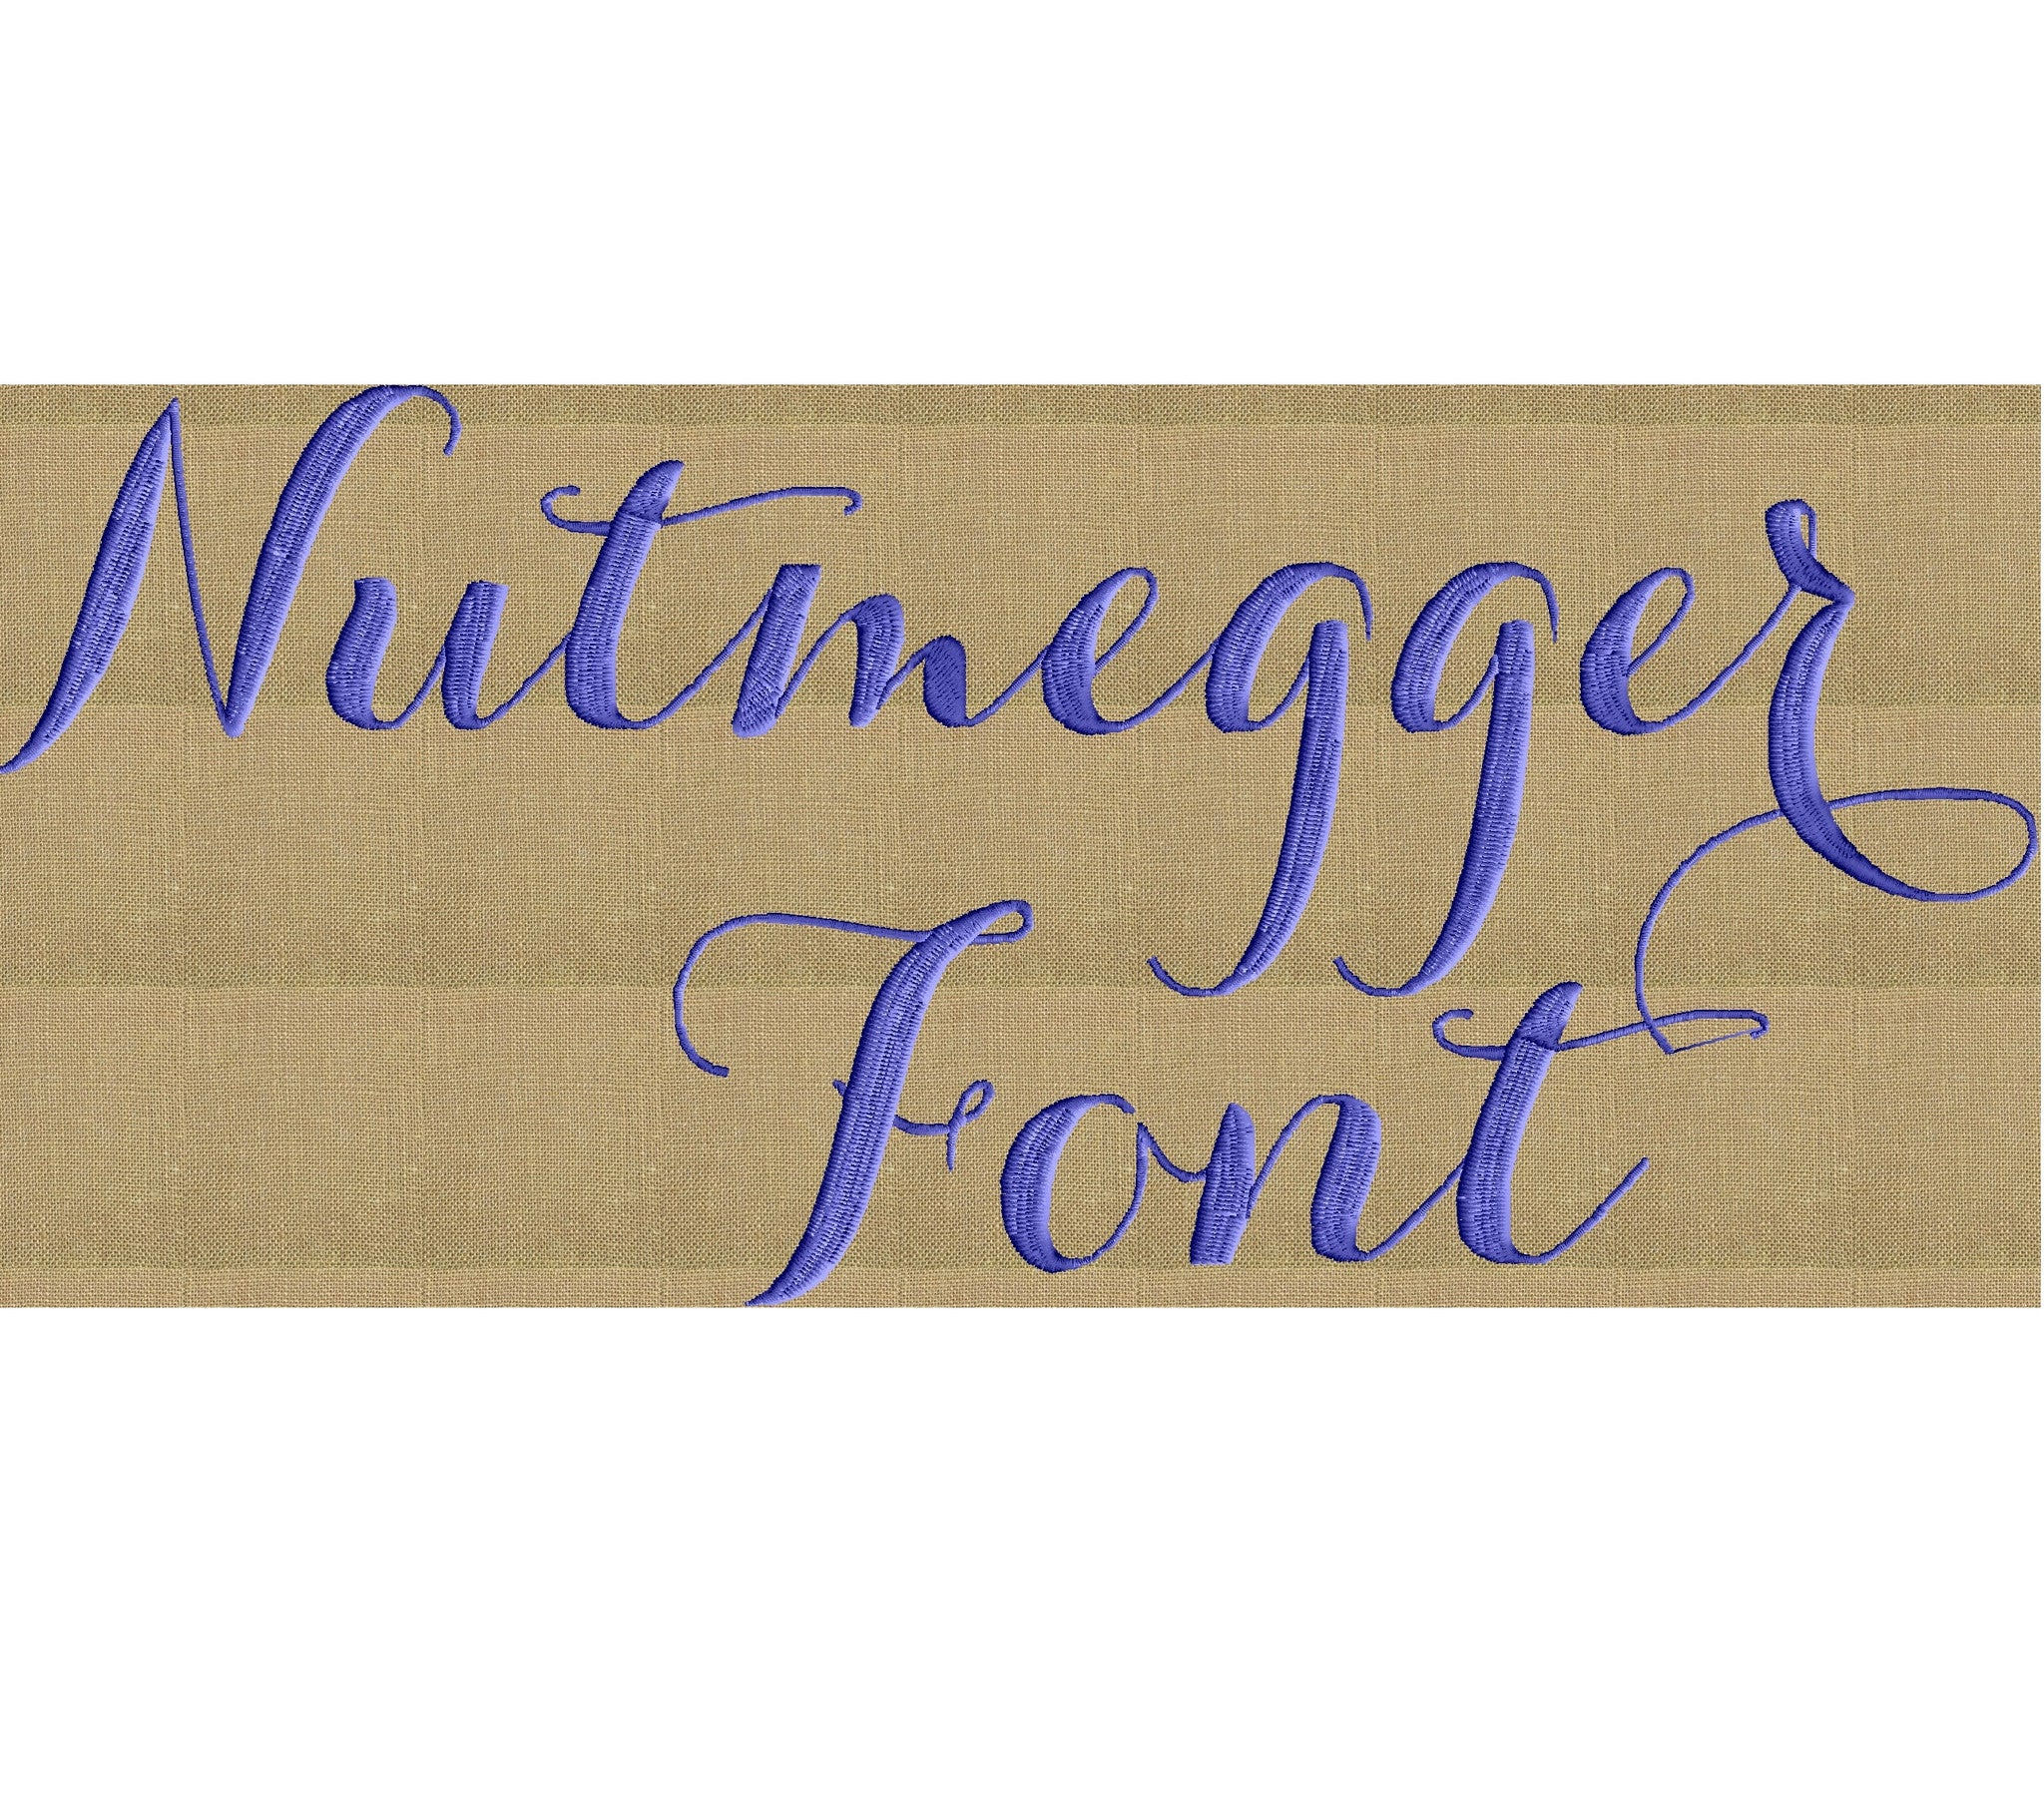 "Nutmegger Full 2"" Font with symbols & numbers Embroidery File - EMBROIDERY DESIGN FILE- Instant download"